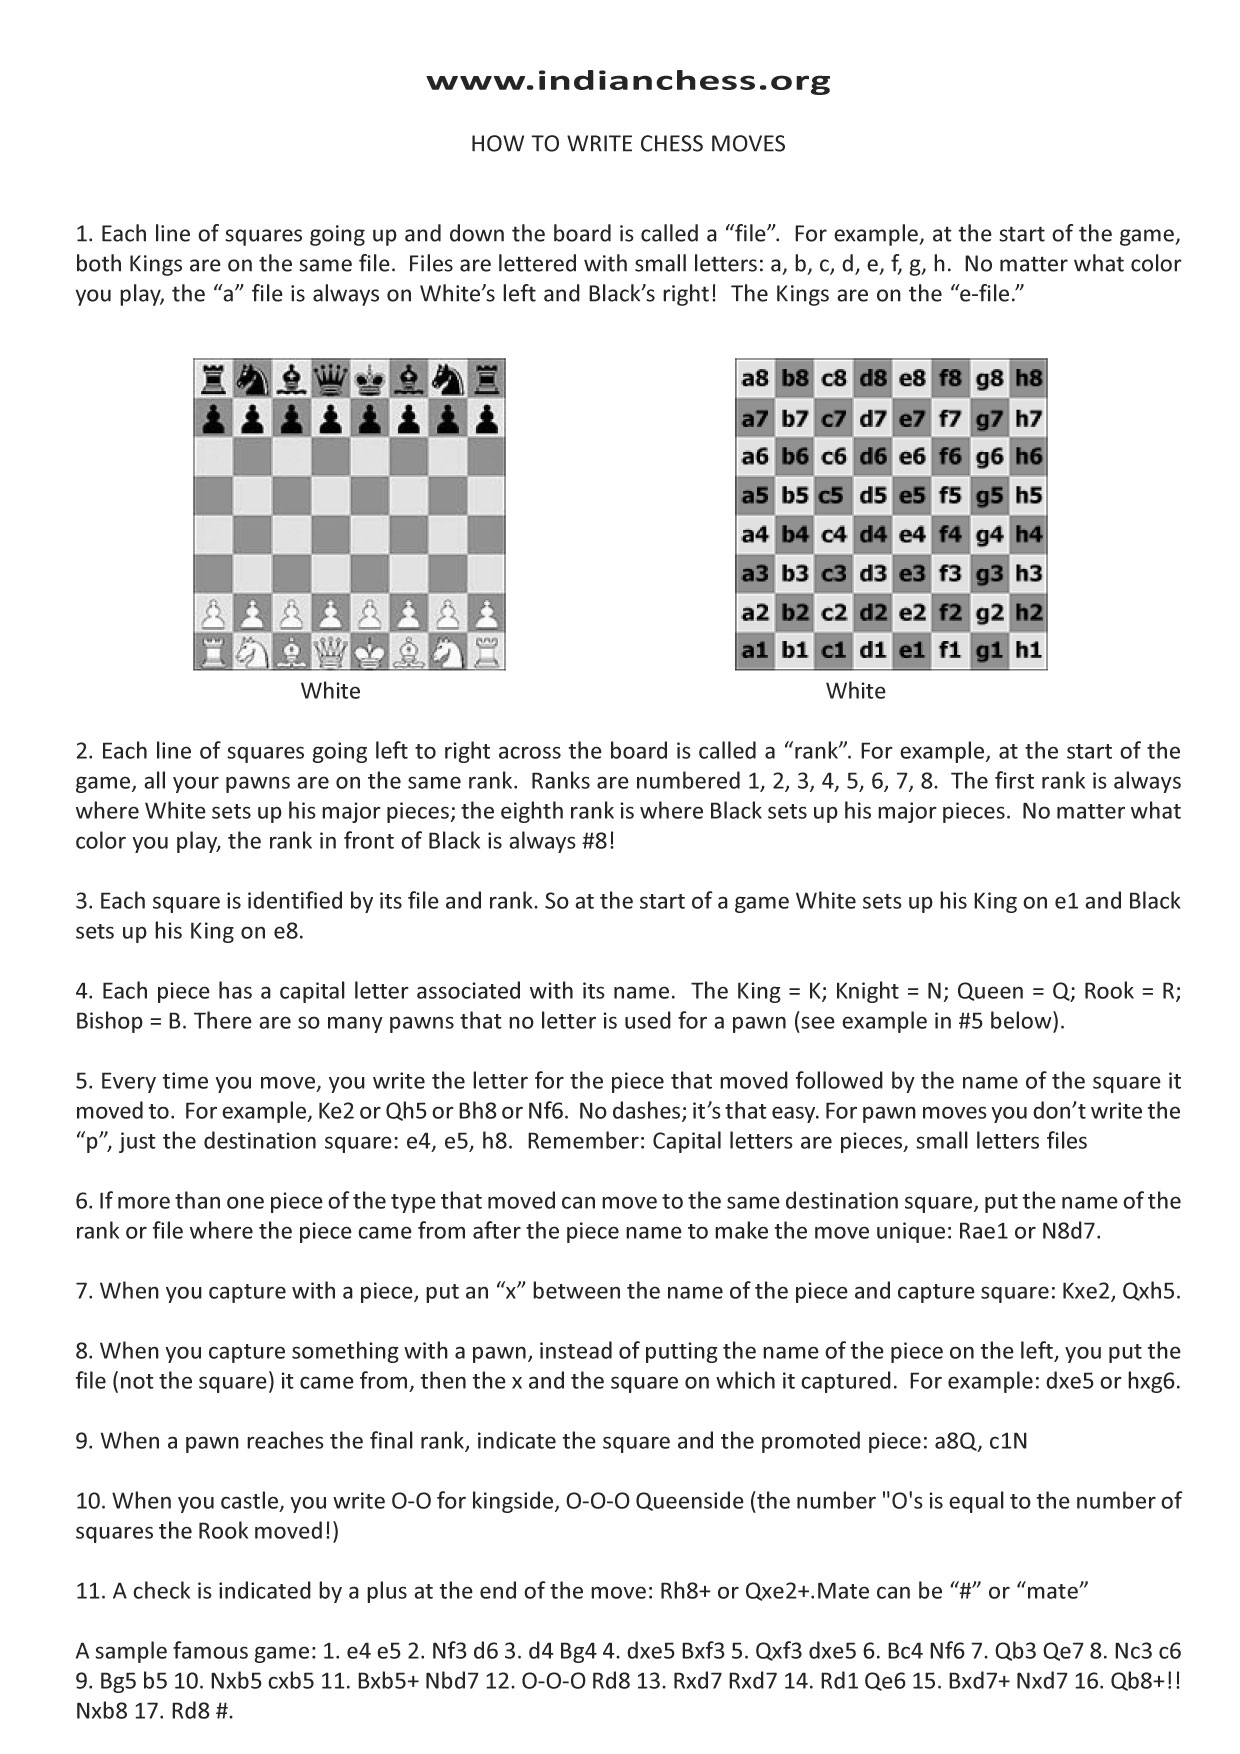 In Quickbooks Quickbooks Tutorials Endorse A Check How To Write Chess Moves